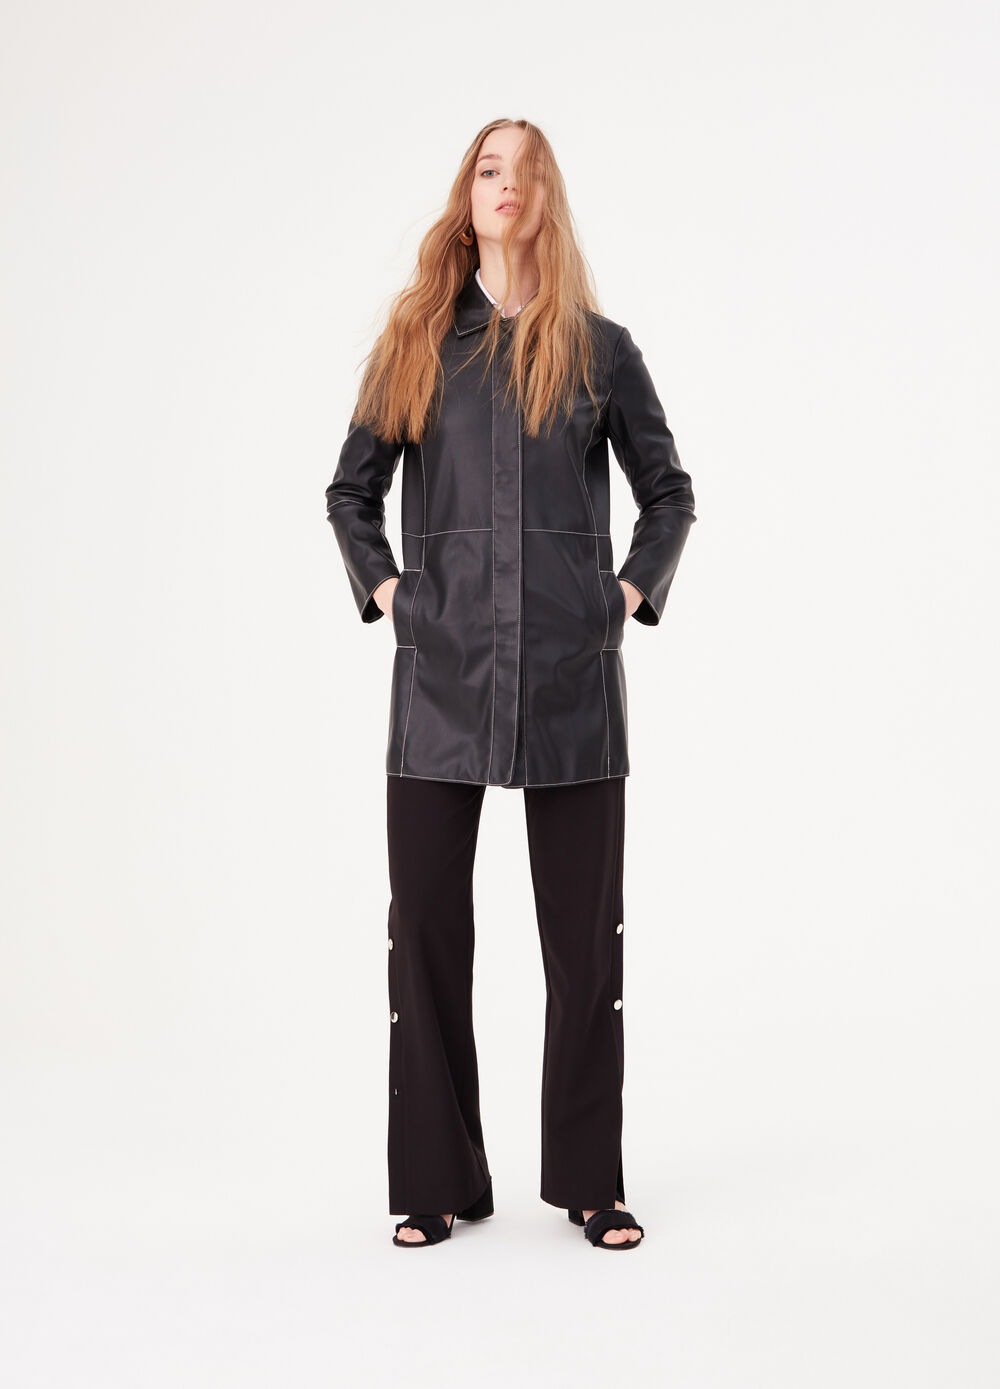 Faux leather coat with contrasting stitching